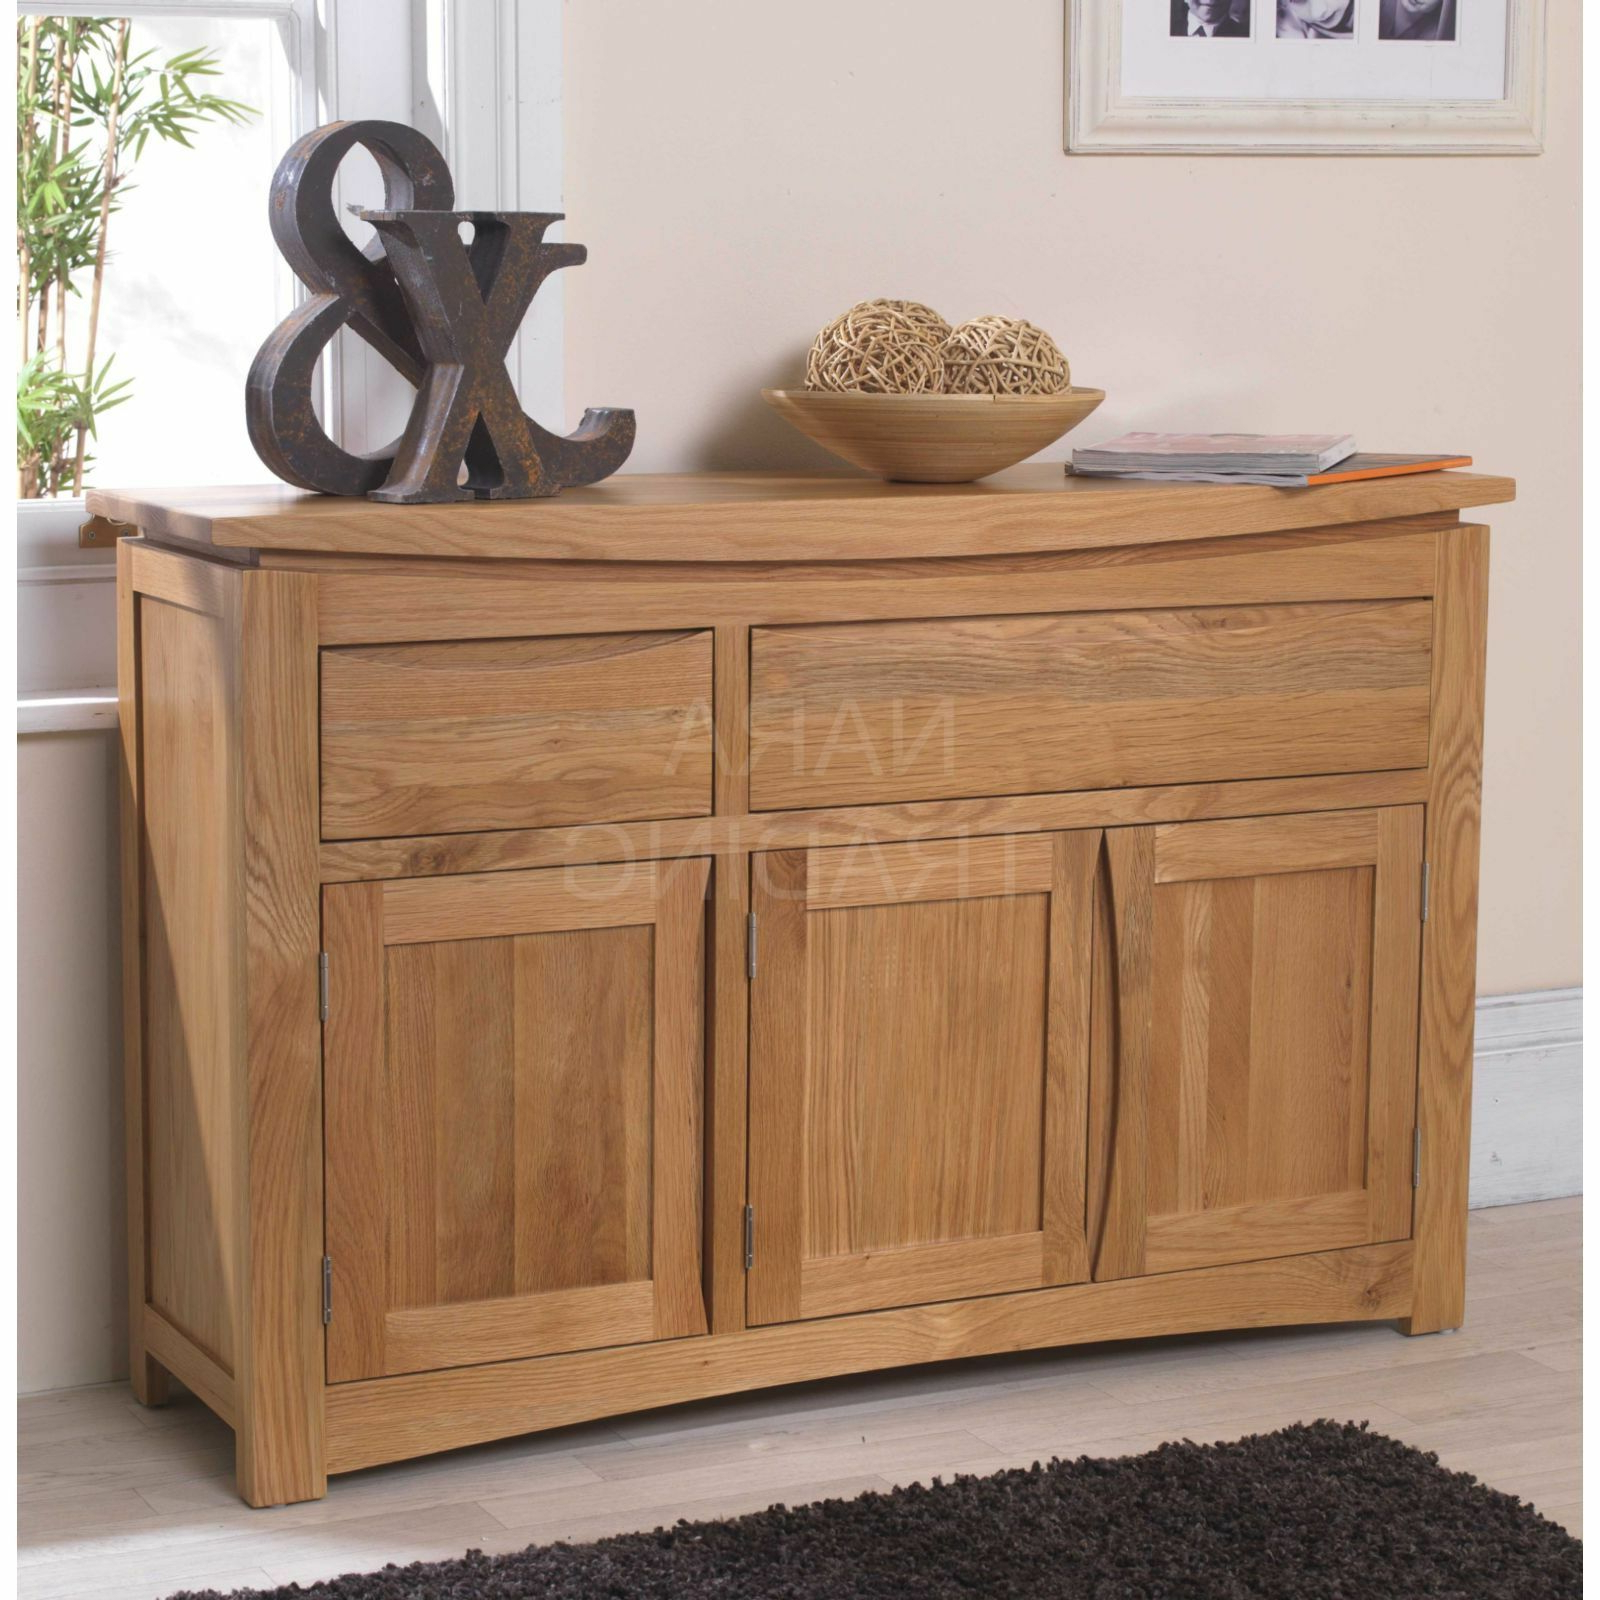 Clifton Sideboards With Best And Newest Crescent Solid Oak Dining Room Furniture Large Storage Sideboard (Gallery 9 of 20)